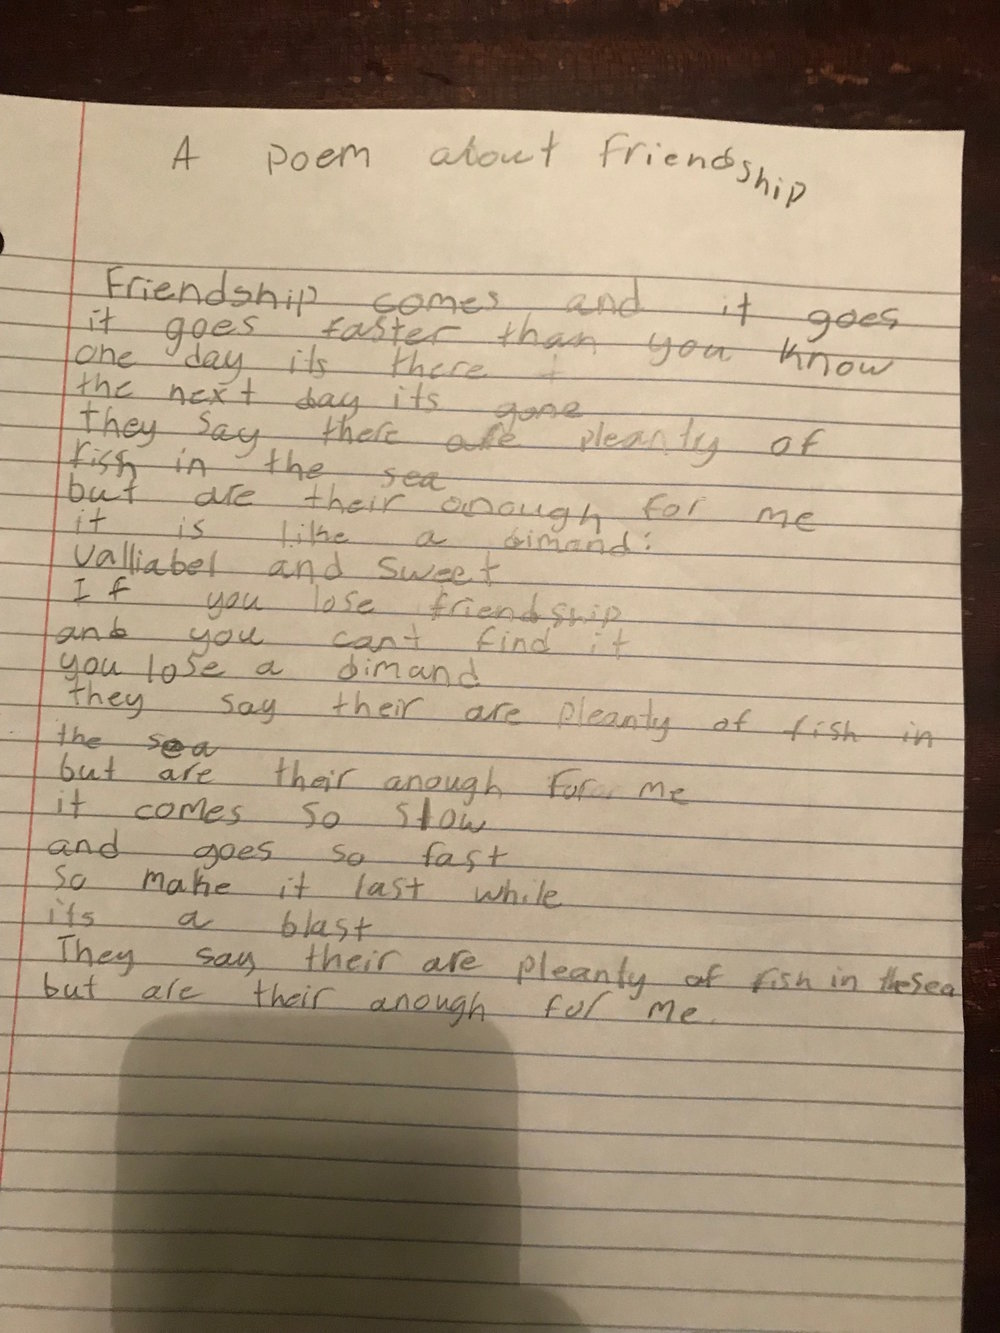 The other day... - My sister sent me a picture of a poem my 9 year old niece, Sienna, wrote. It is aptly entitled